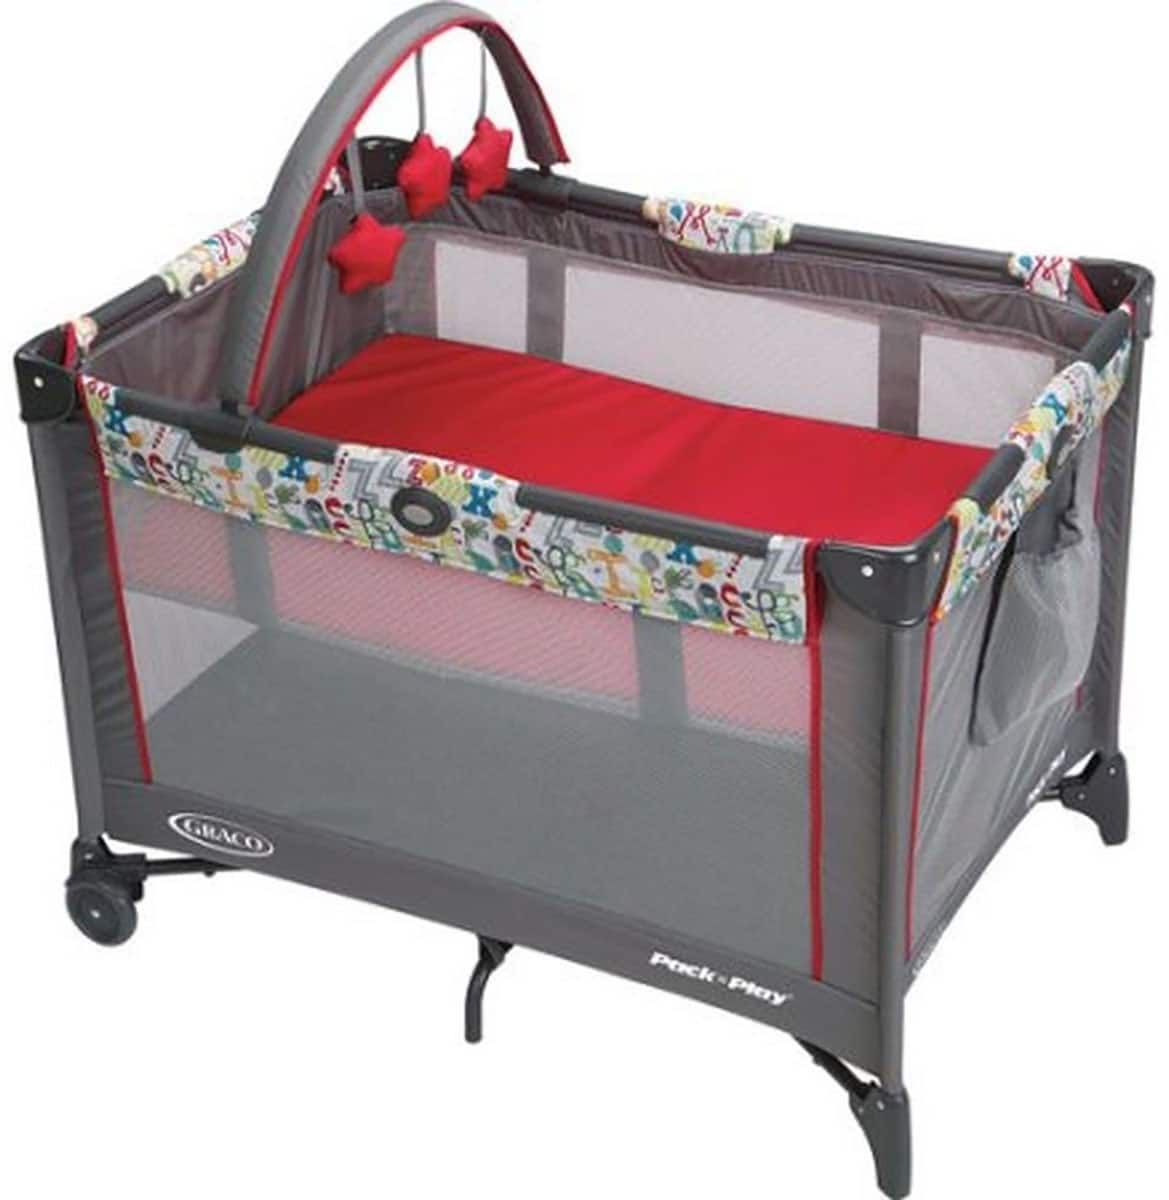 8f3618e8fae8 Albee Baby Flash Sale  Graco Pack  n Play On The Go Playard (Typo ...